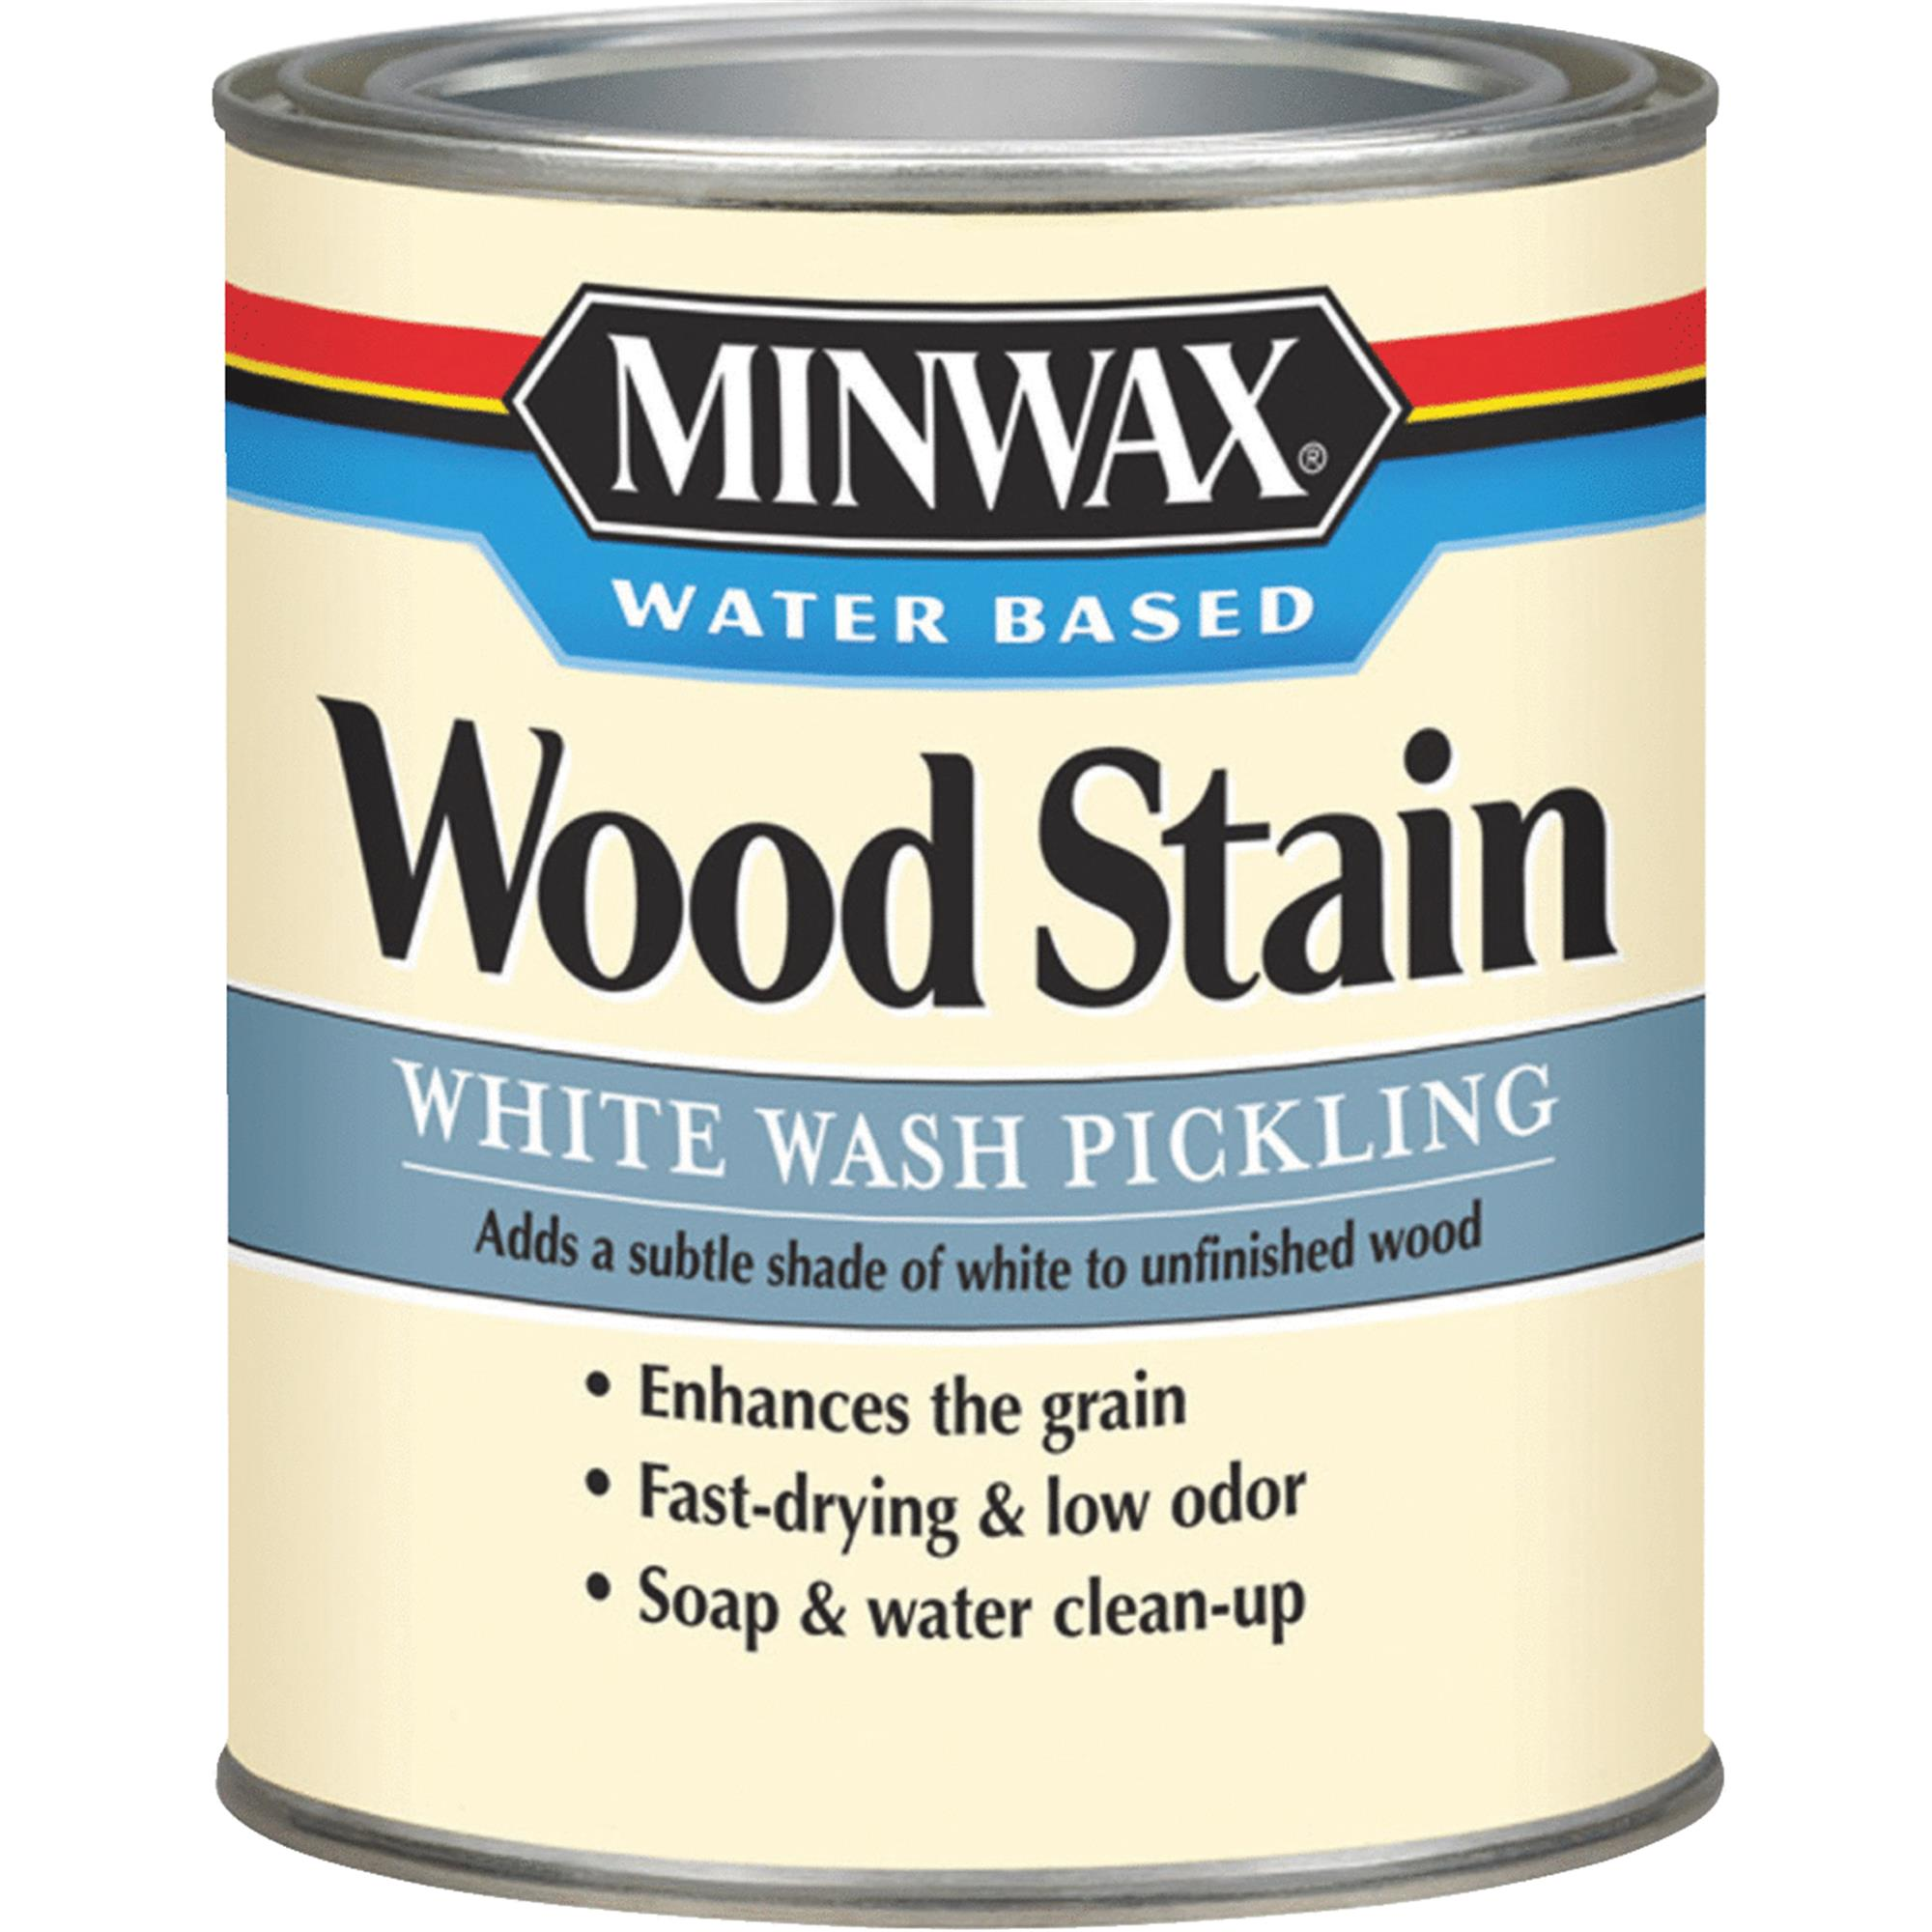 Minwax Water-Based White Wash Pickling Wood Stain